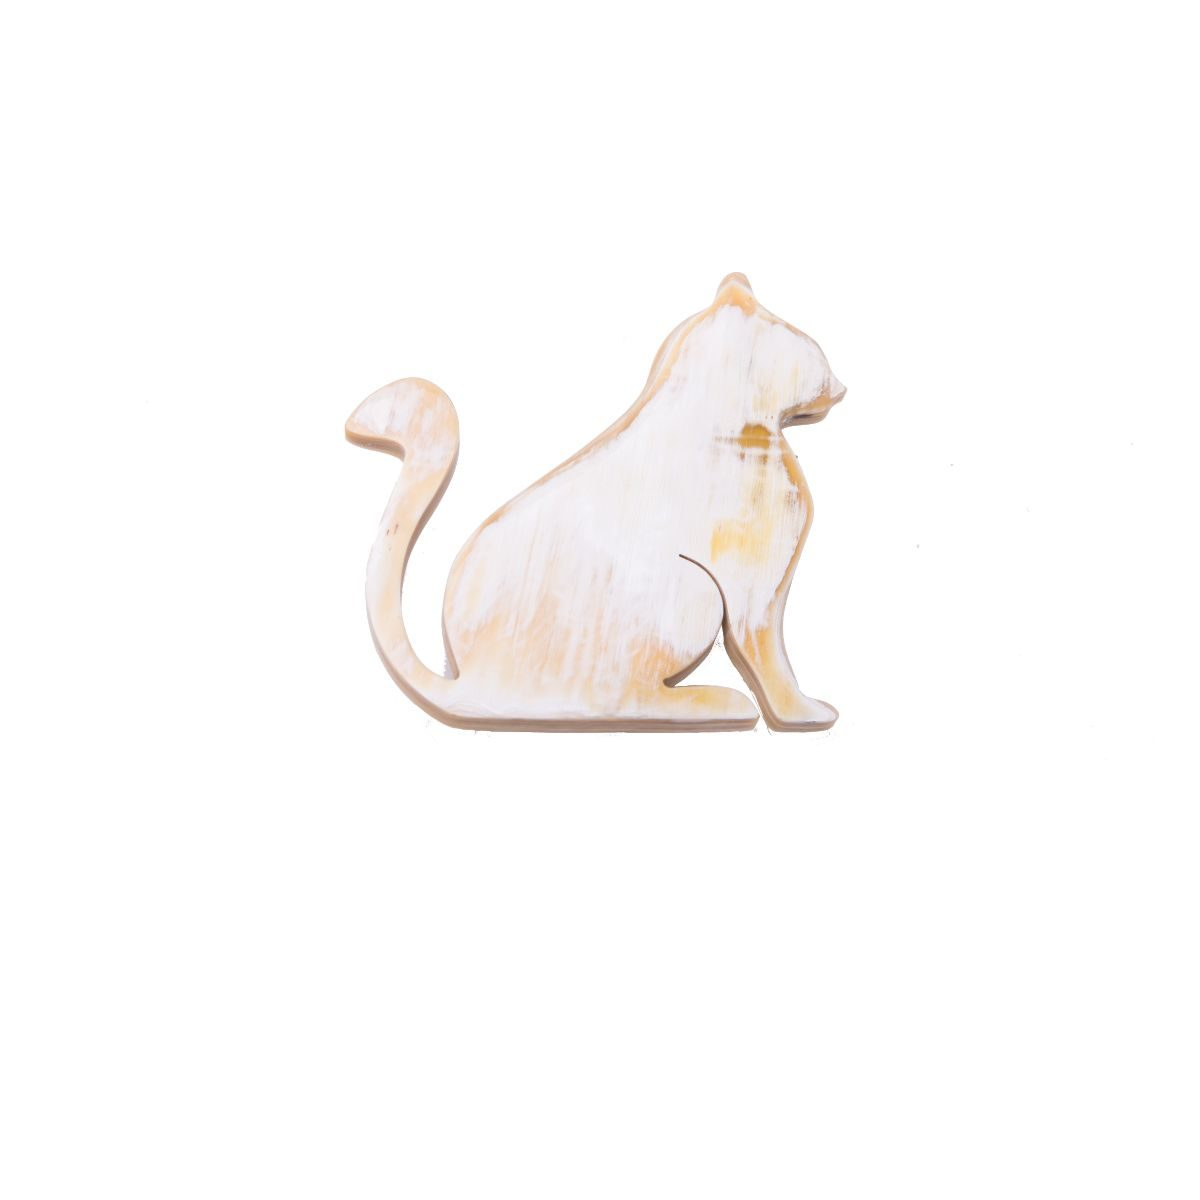 Crookshanks broche de asta natural en forma de gato